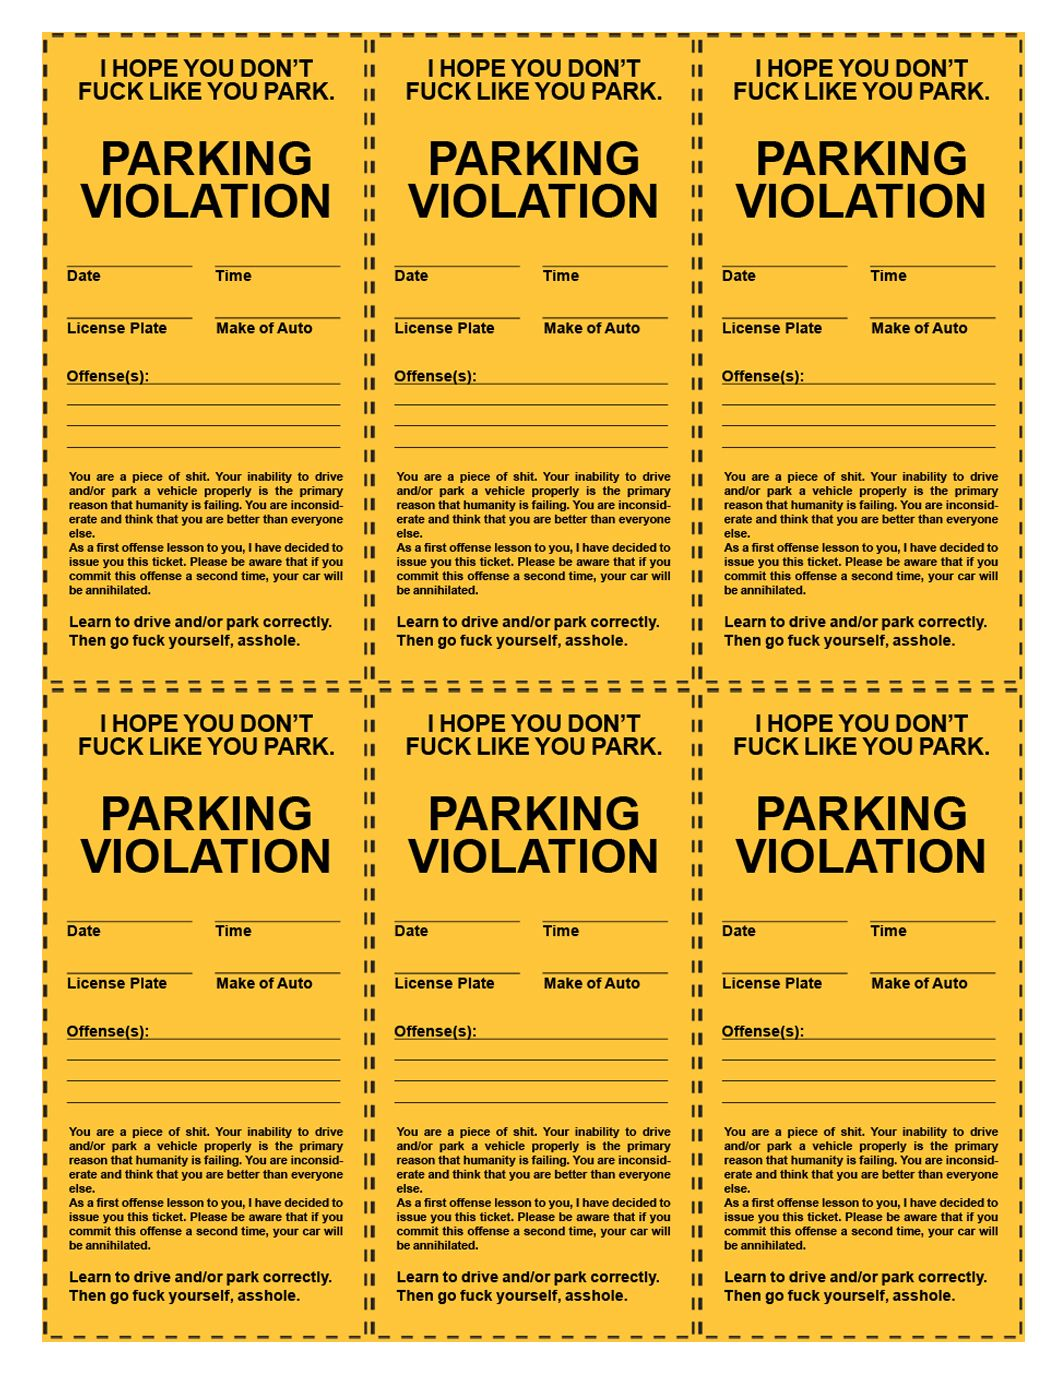 graphic regarding Printable Parking Ticket identify humorous printable parking tickets Templates and Printables